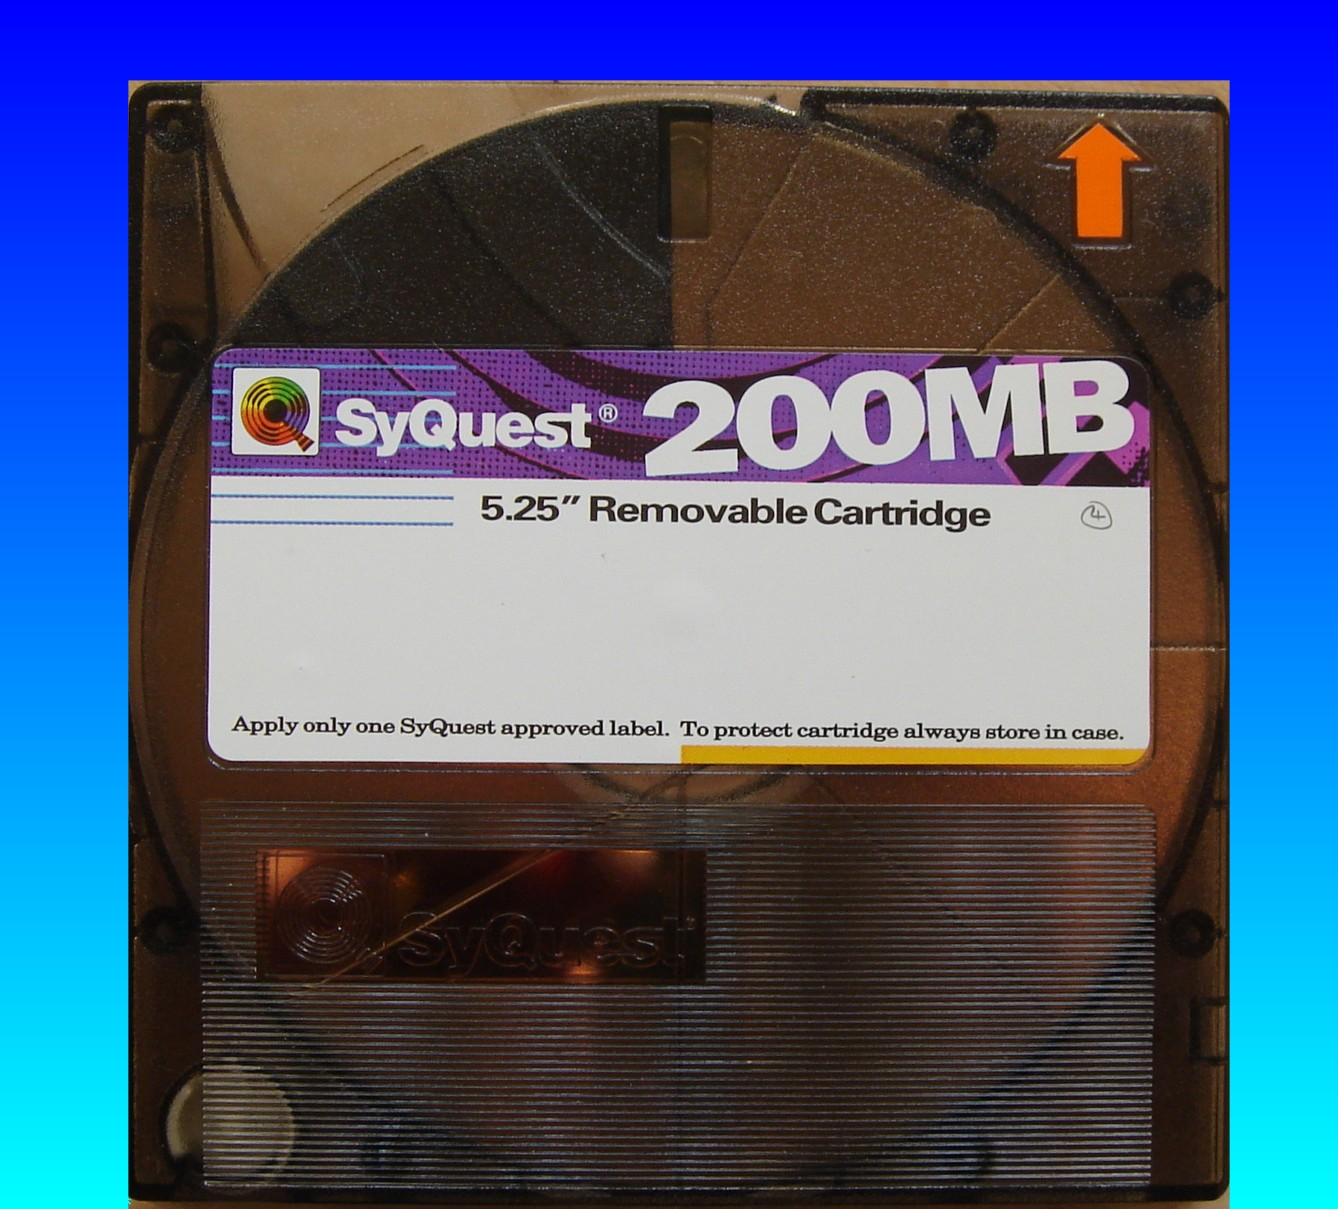 A Syquest 200mb 5.25 inch cartridge that was used in an Apple Mac, and needs to transfer the files.